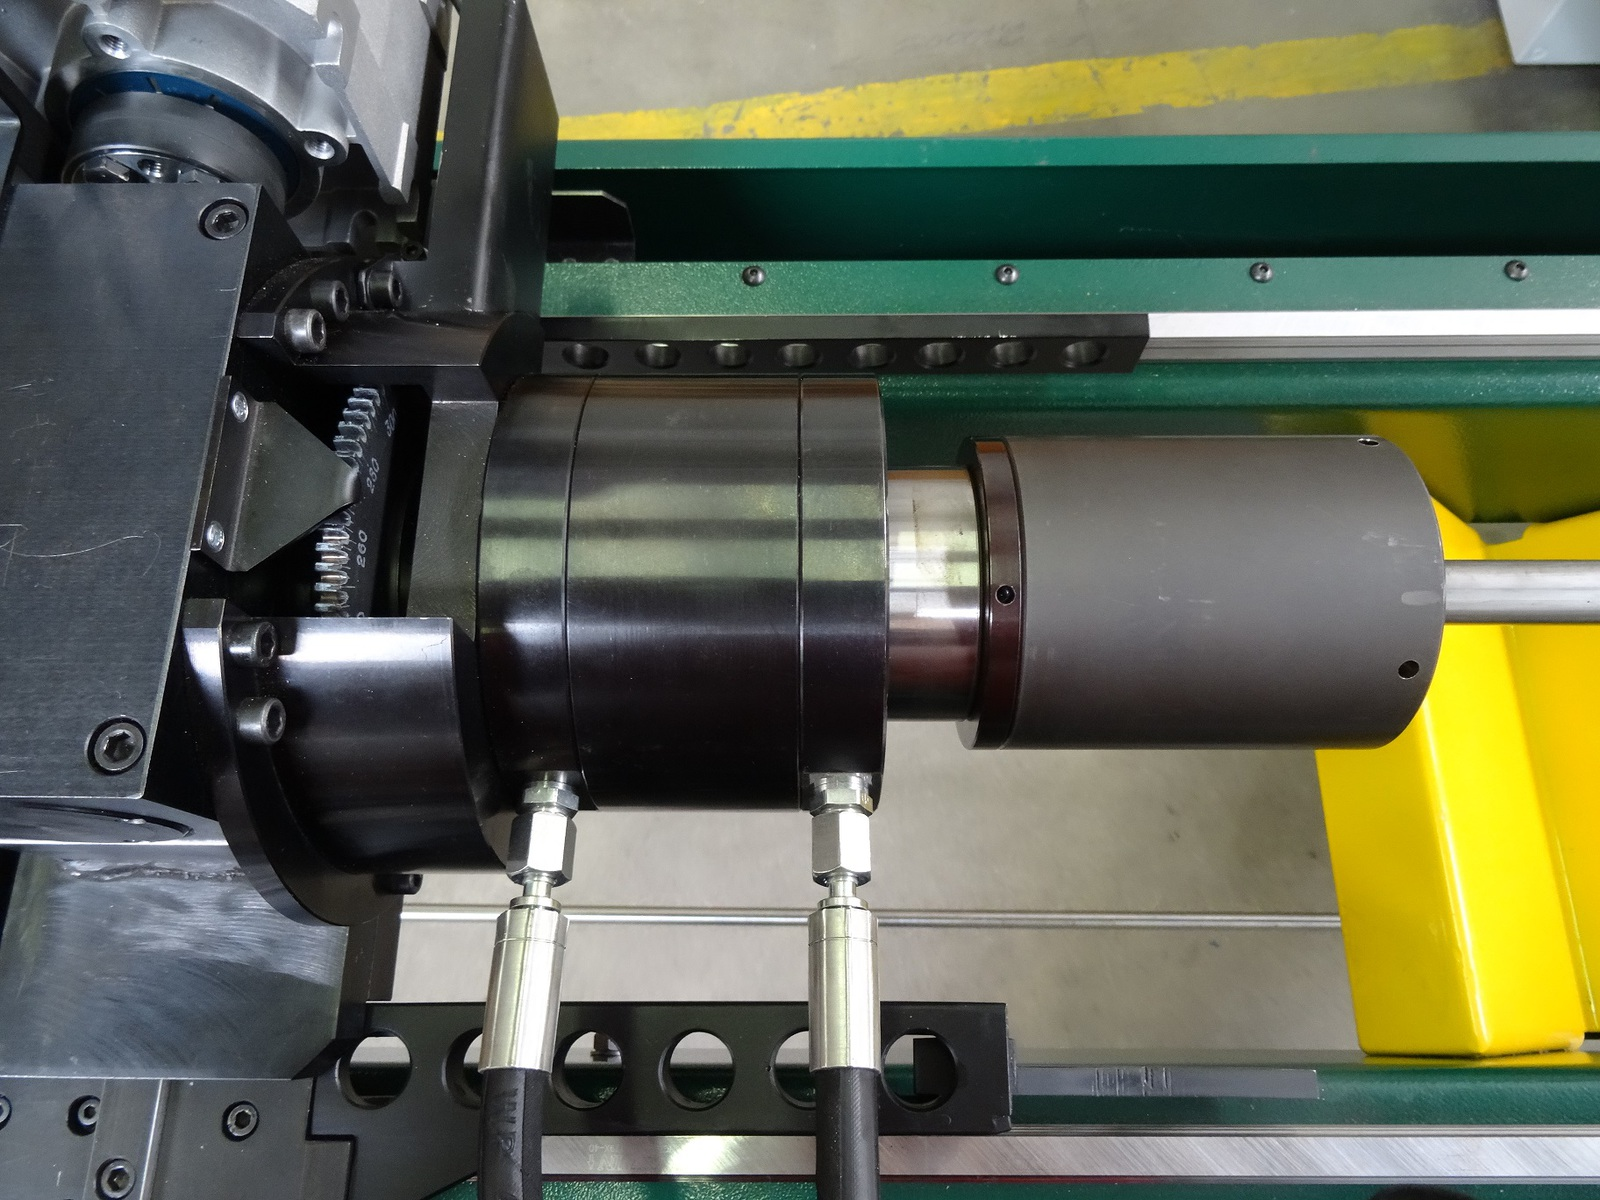 Hydraulic tube clamping